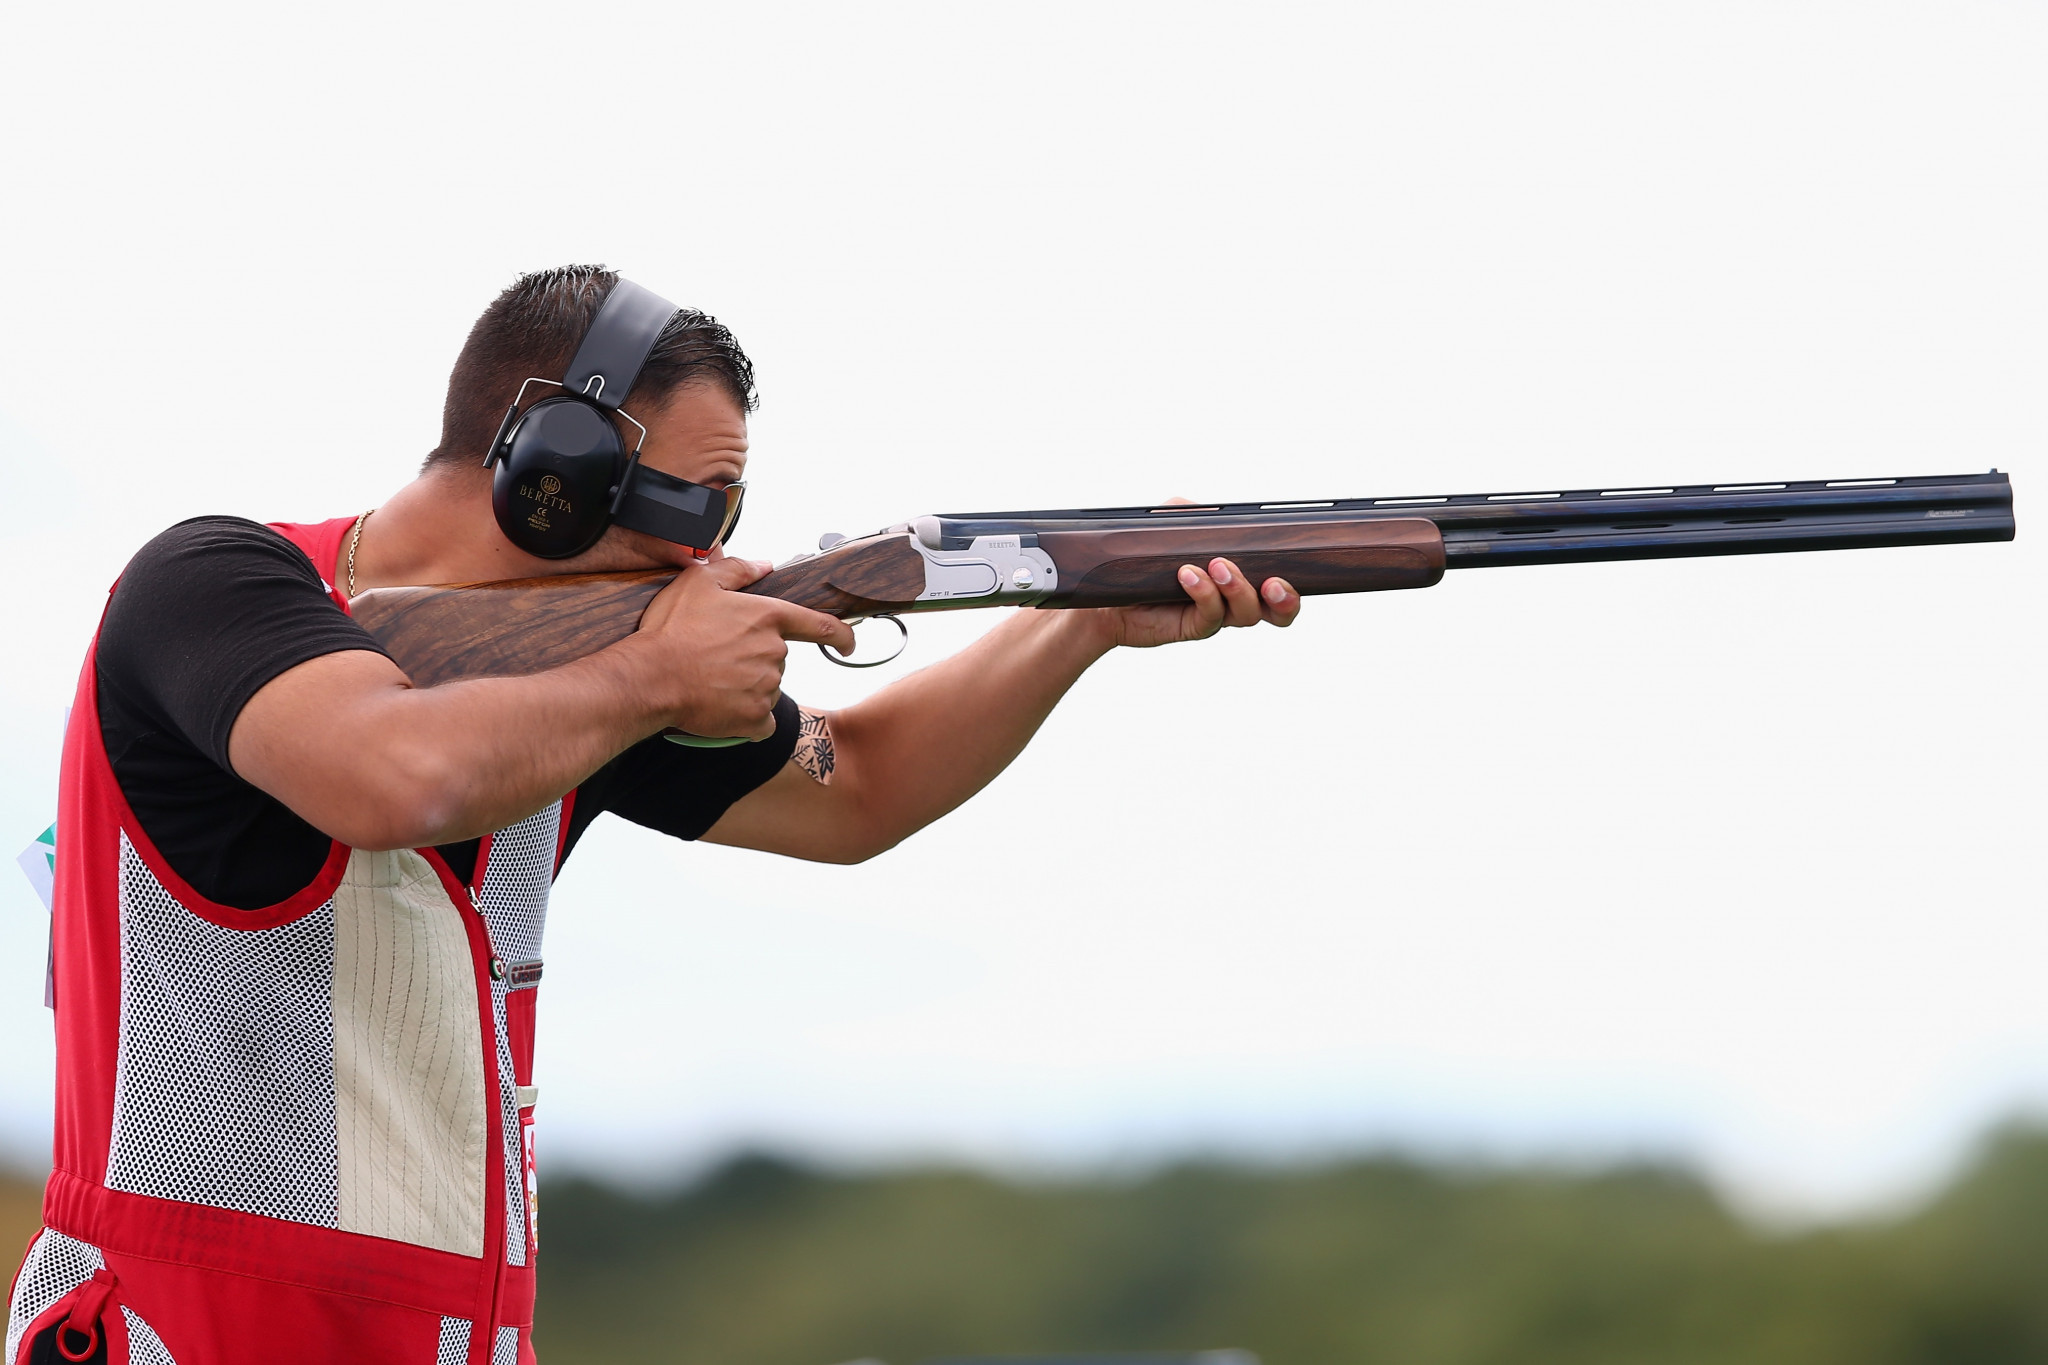 England's Aaron Heading claimed the Commonwealth men's trap title on the penultimate day of action at the Oceania and Commonwealth Shooting Federations' Championships in Brisbane ©Getty Images